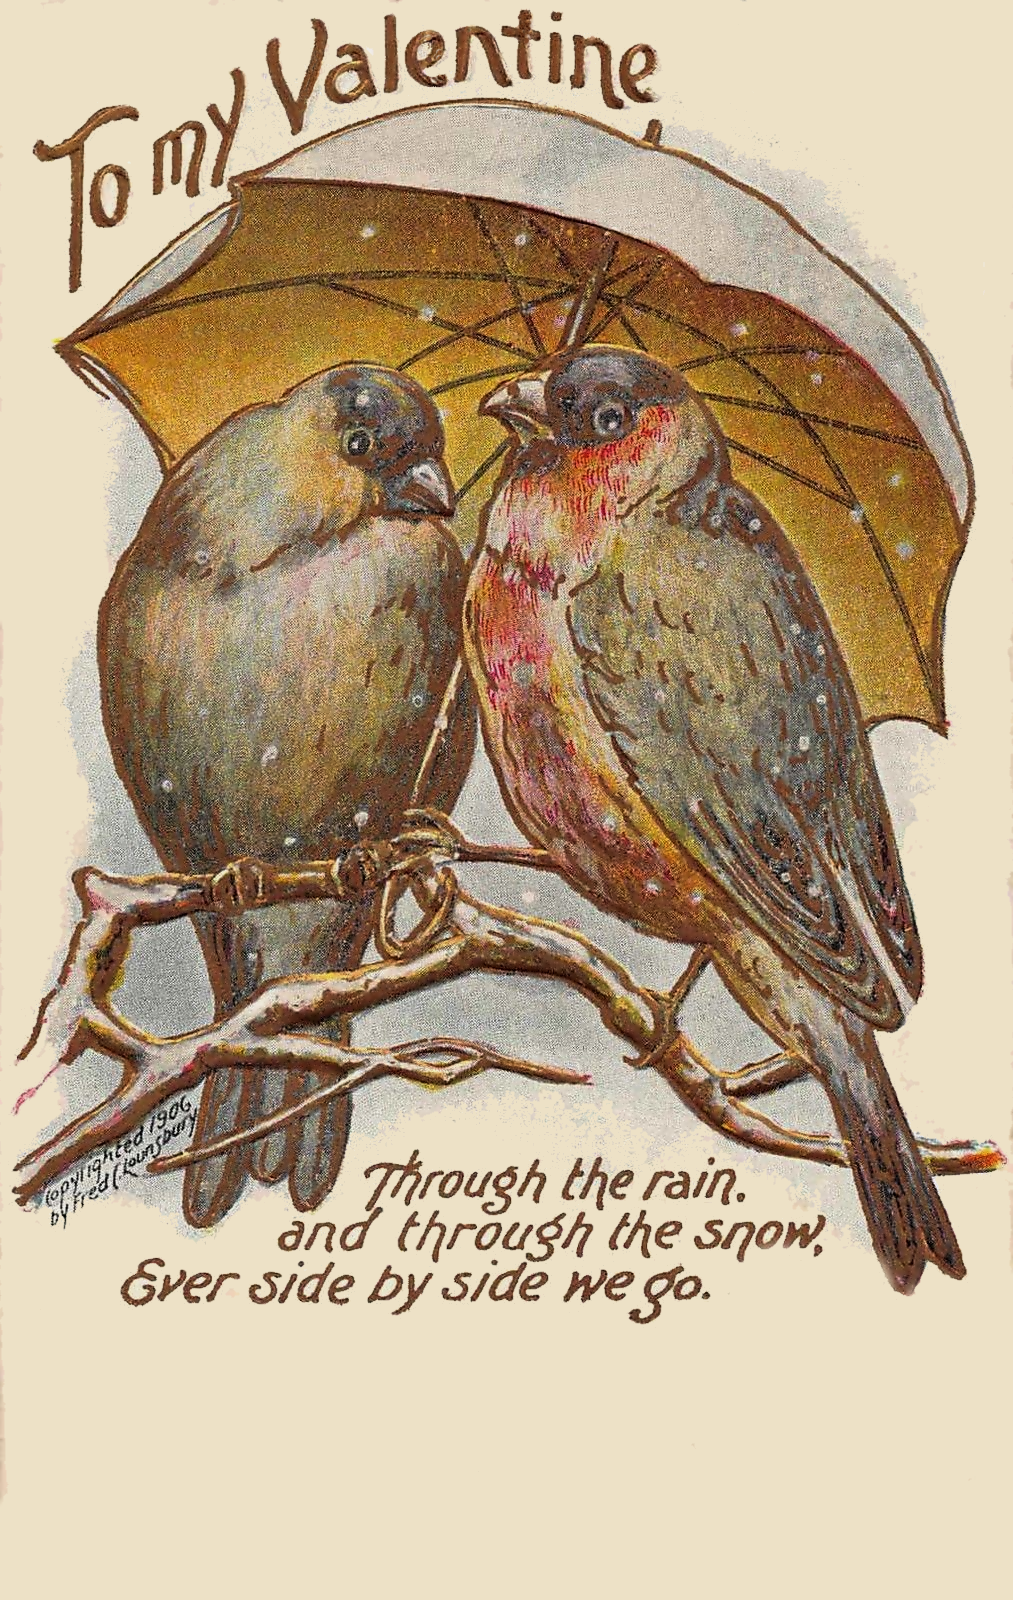 Love Birds, A Sweet Valentine Card from the Early 1900s